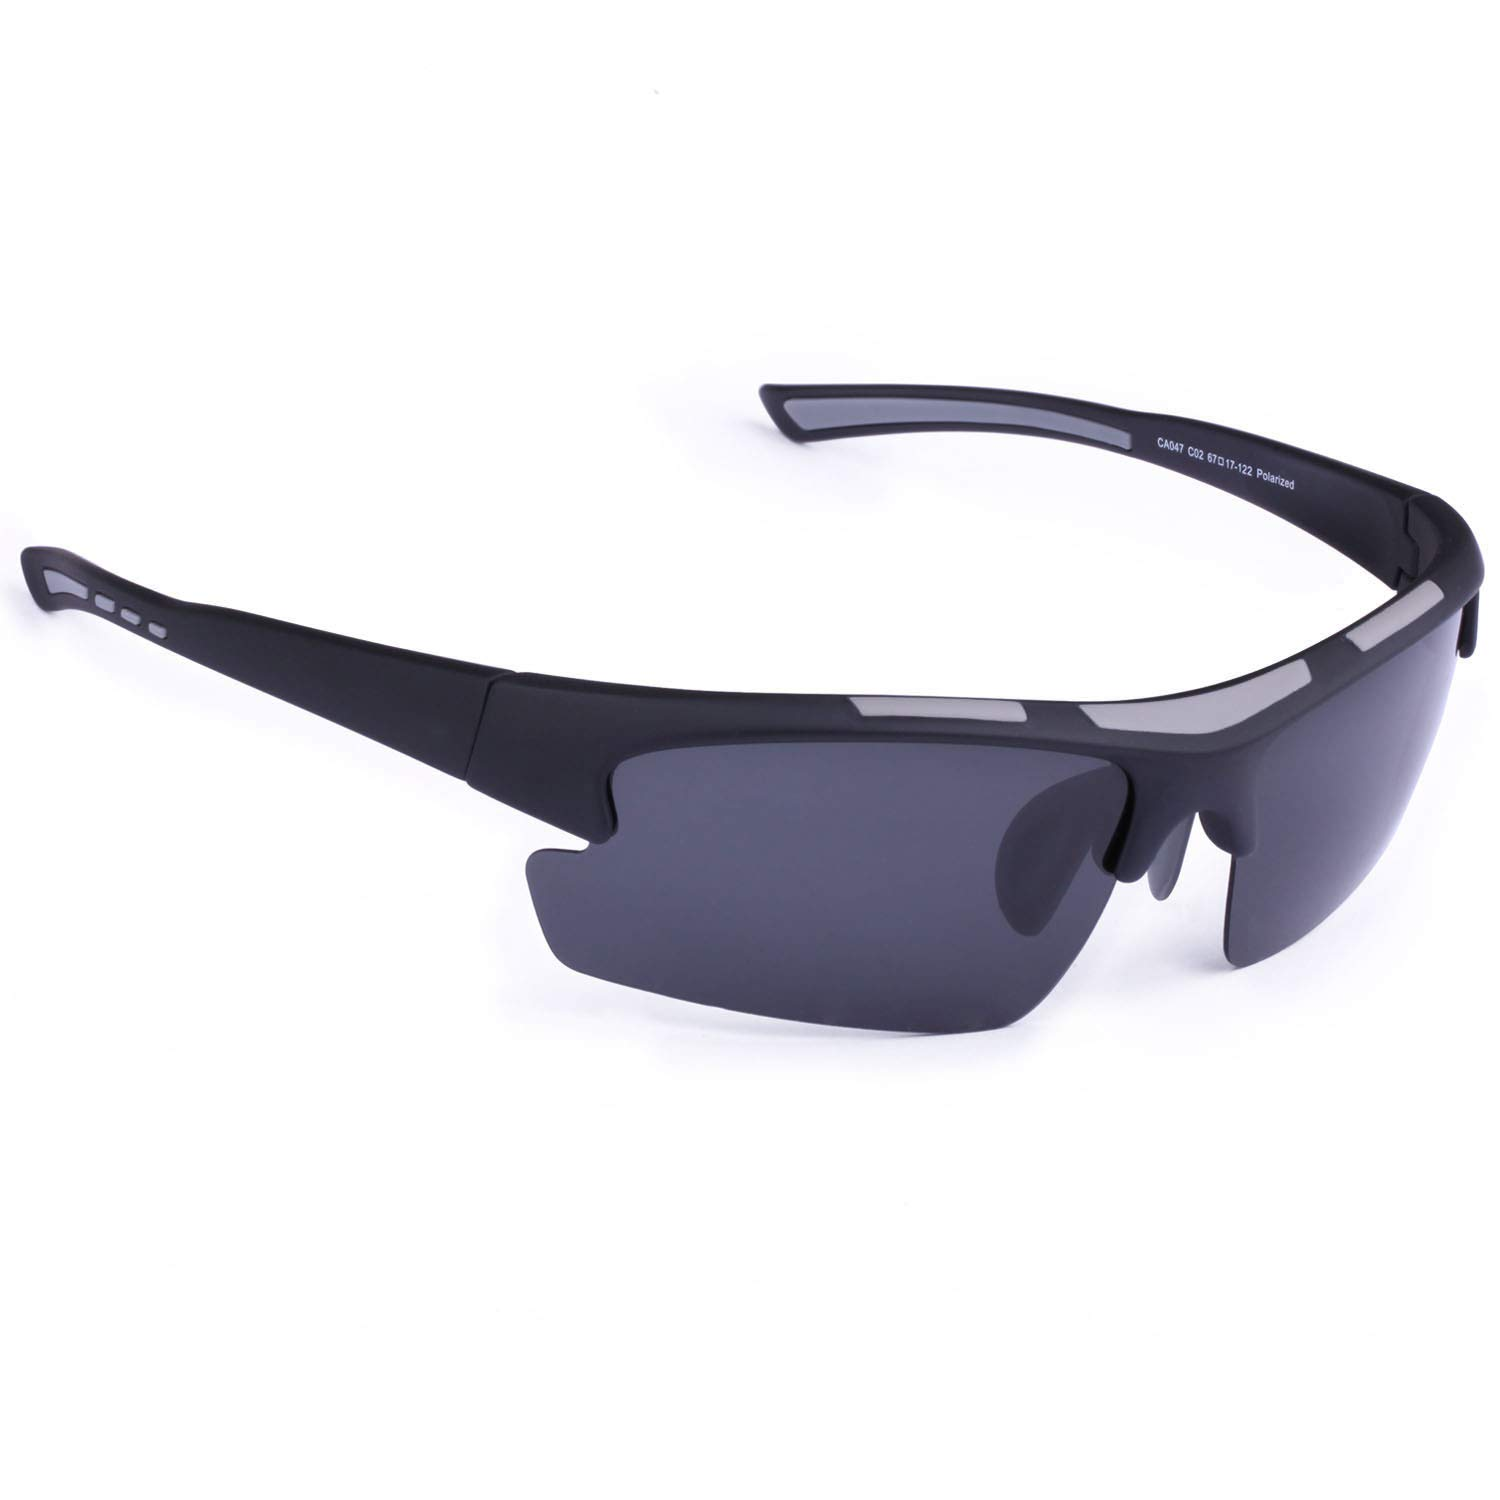 Sports Sunglasses - Carfia Cycling Running Fishing Sunglasses for Men Women Ultralight Comfy Frame (Style: Blue Mirror) by Carfia